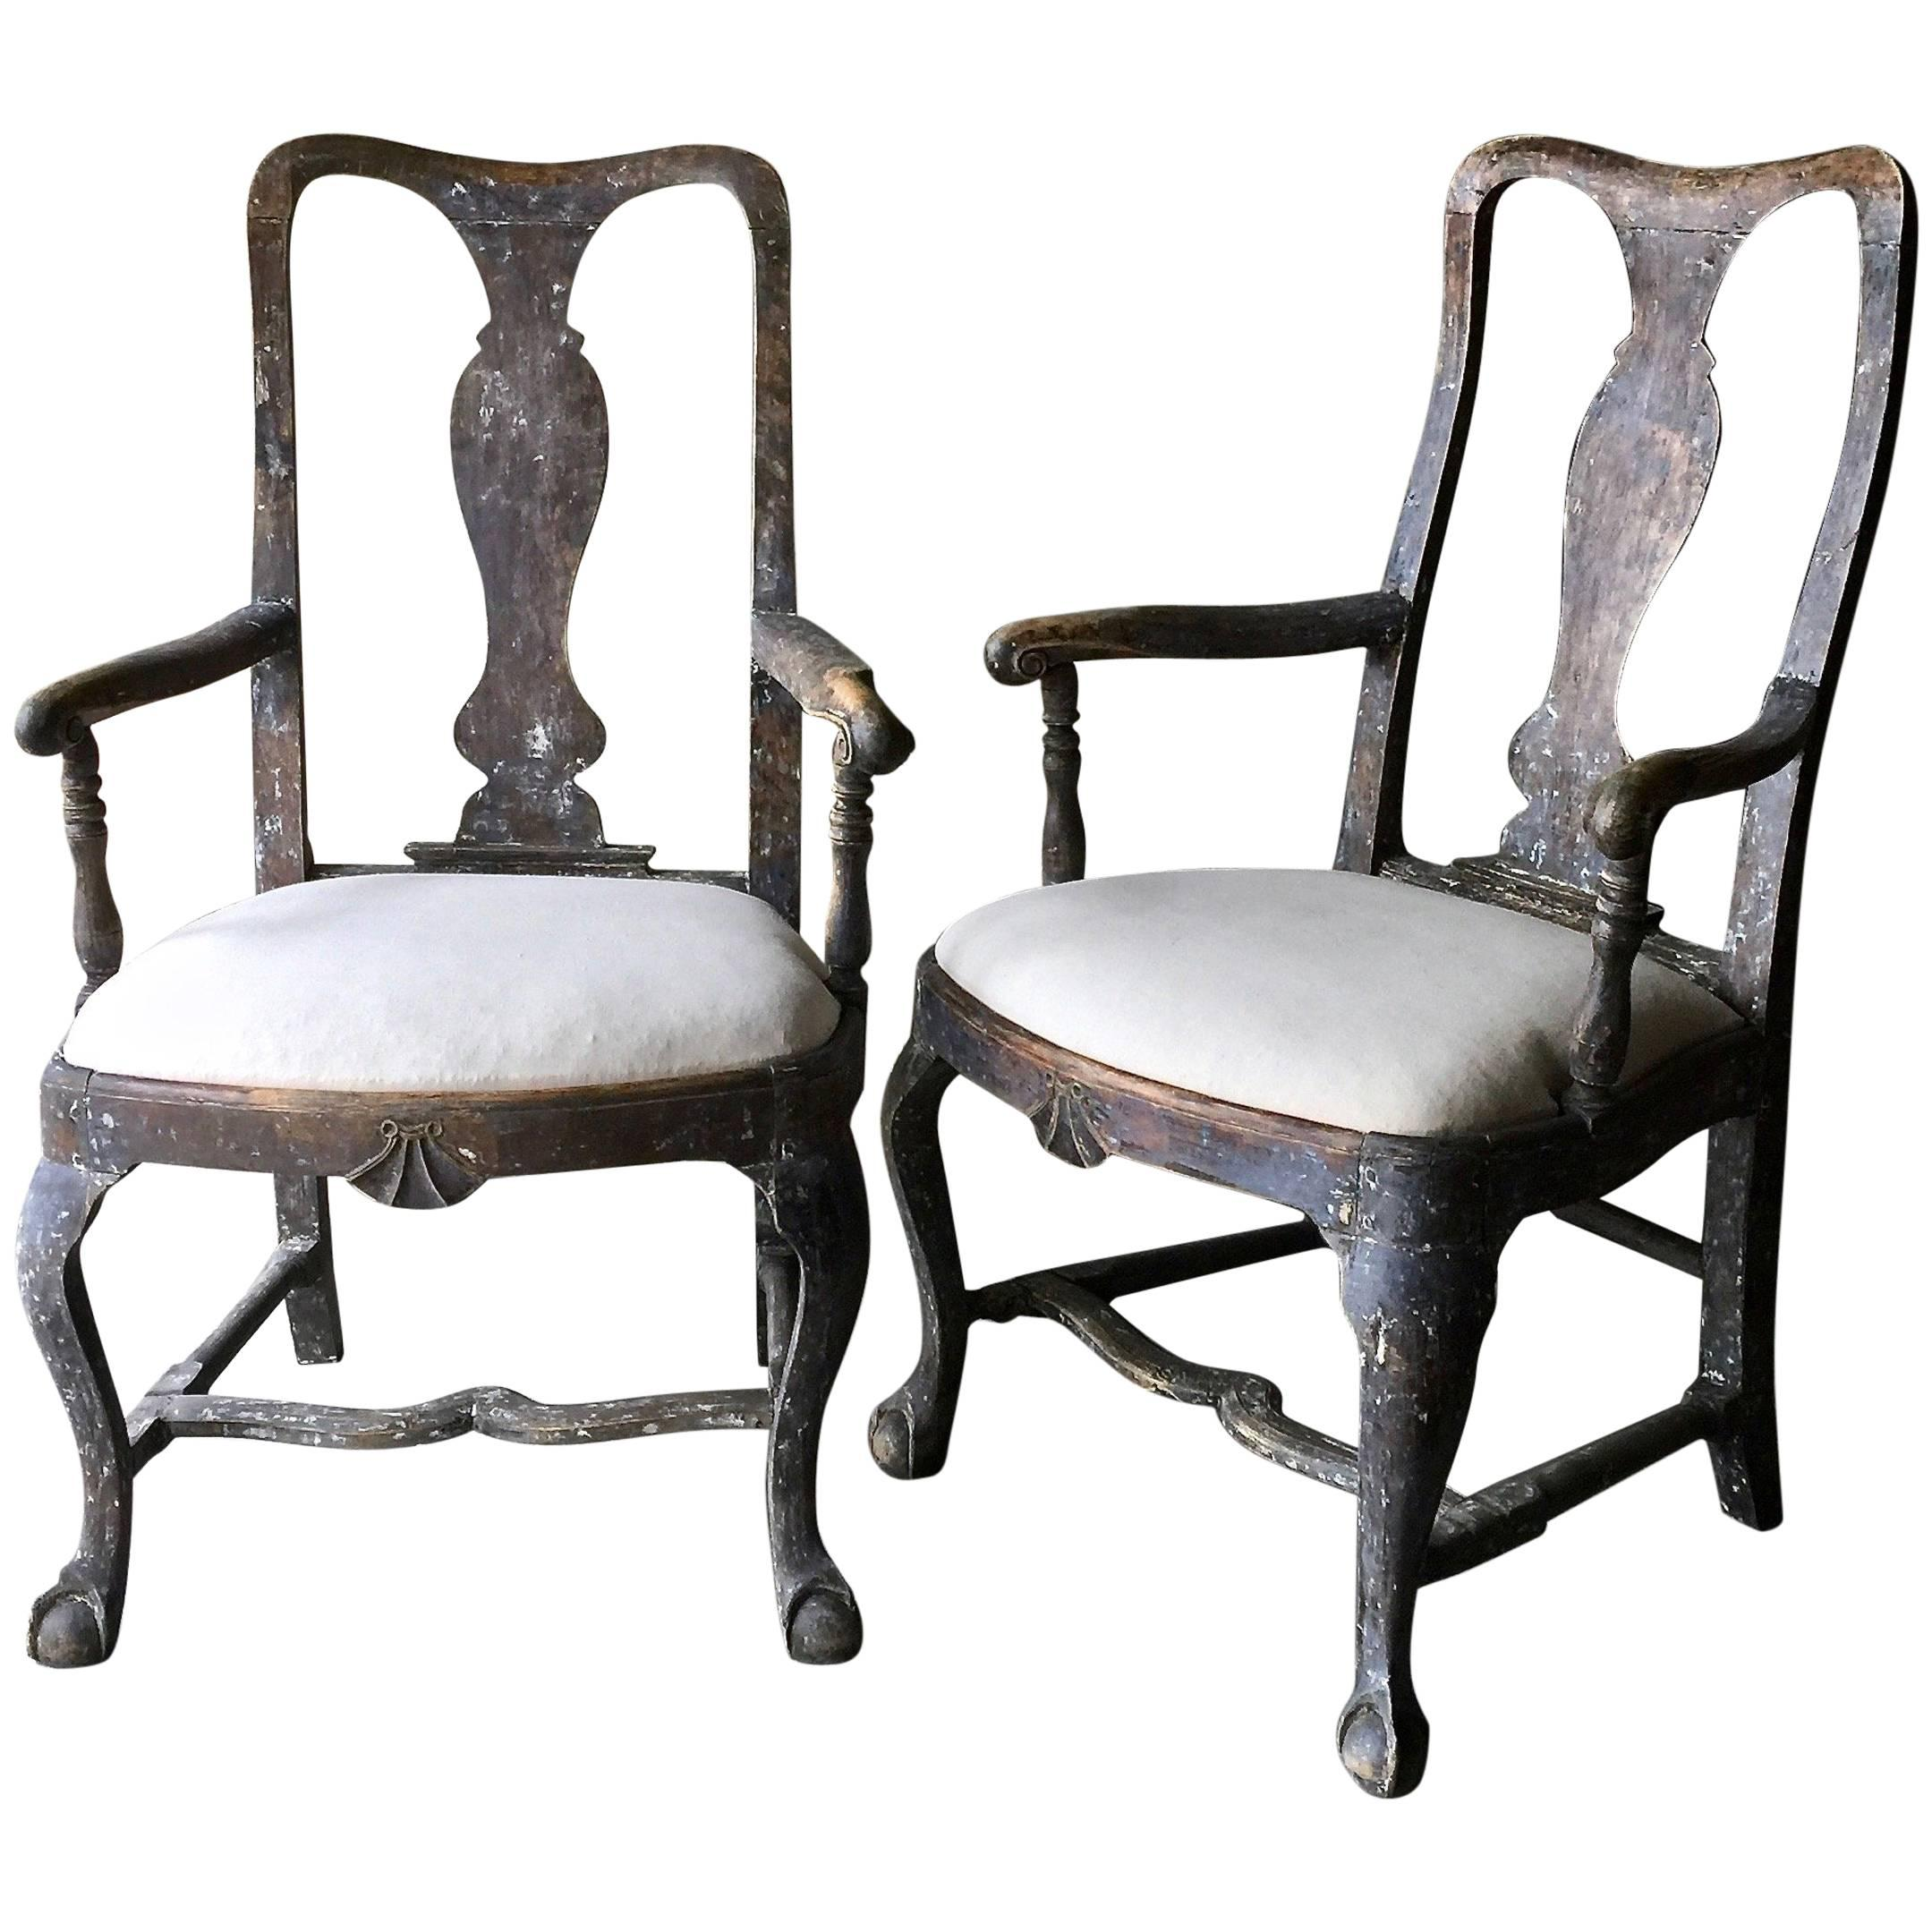 Pair of 18th Century Swedish Period Rococo Armchairs